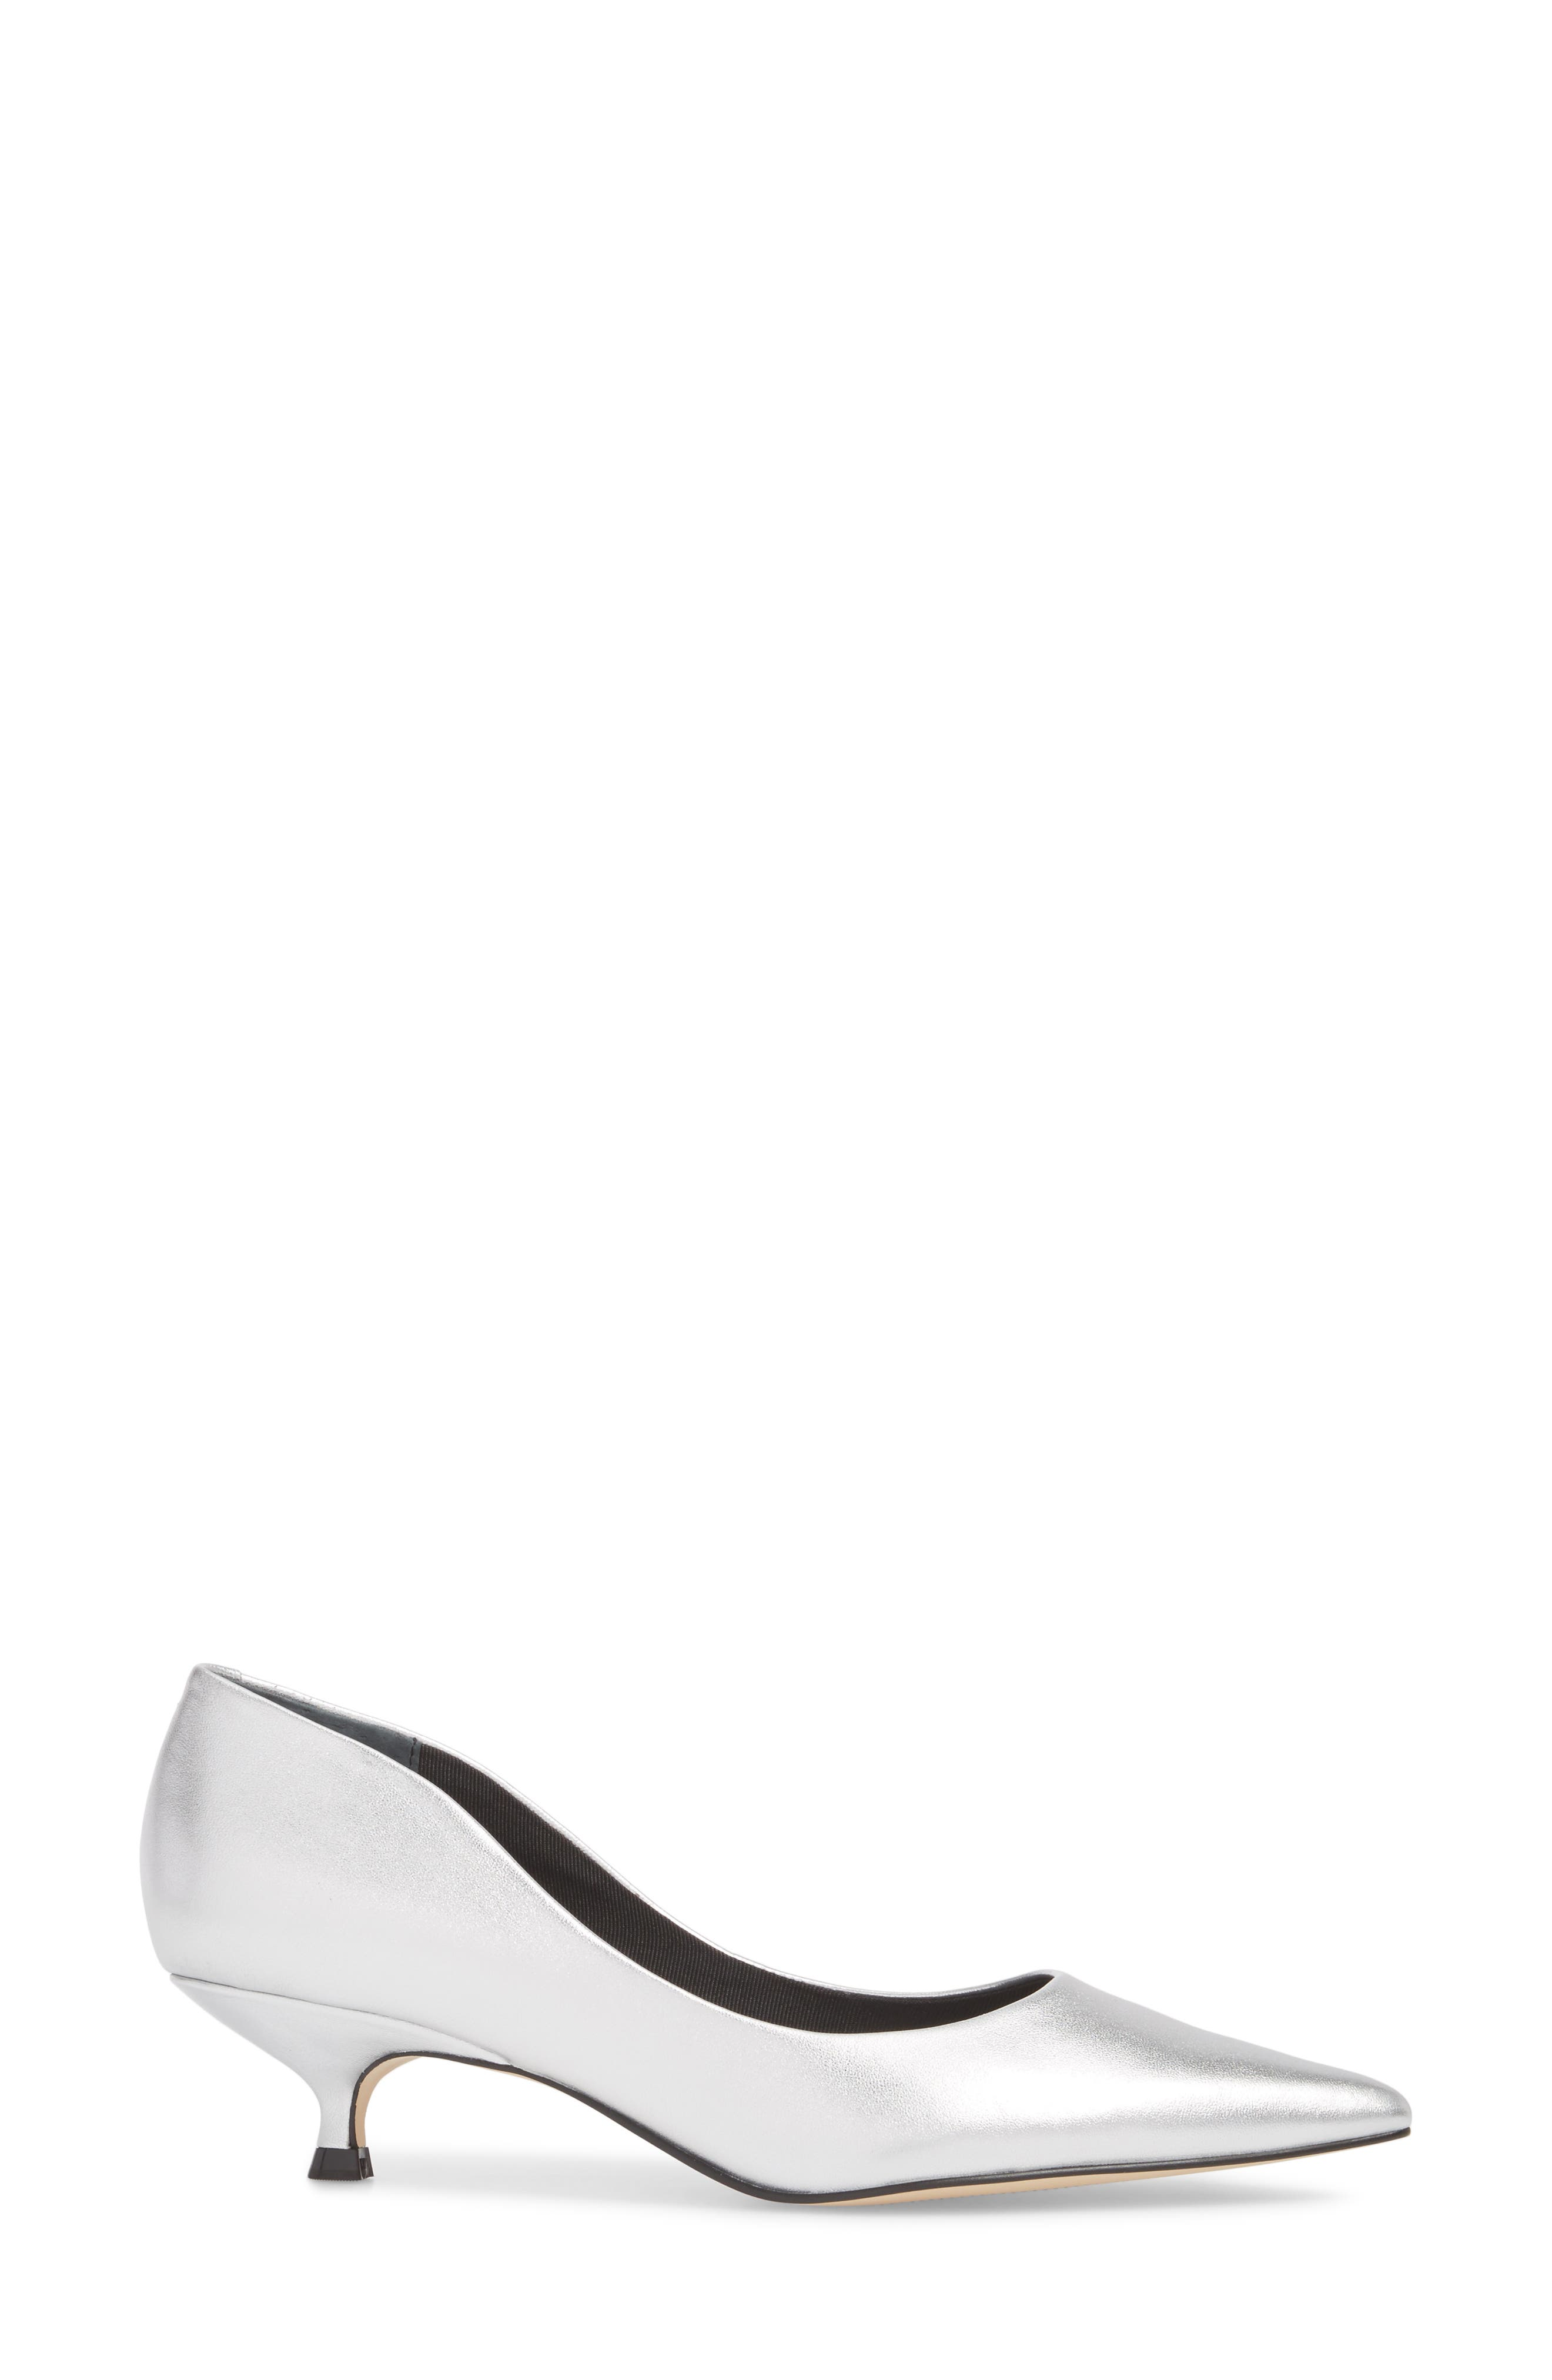 Xanthe Kitten Heel Pump,                             Alternate thumbnail 13, color,